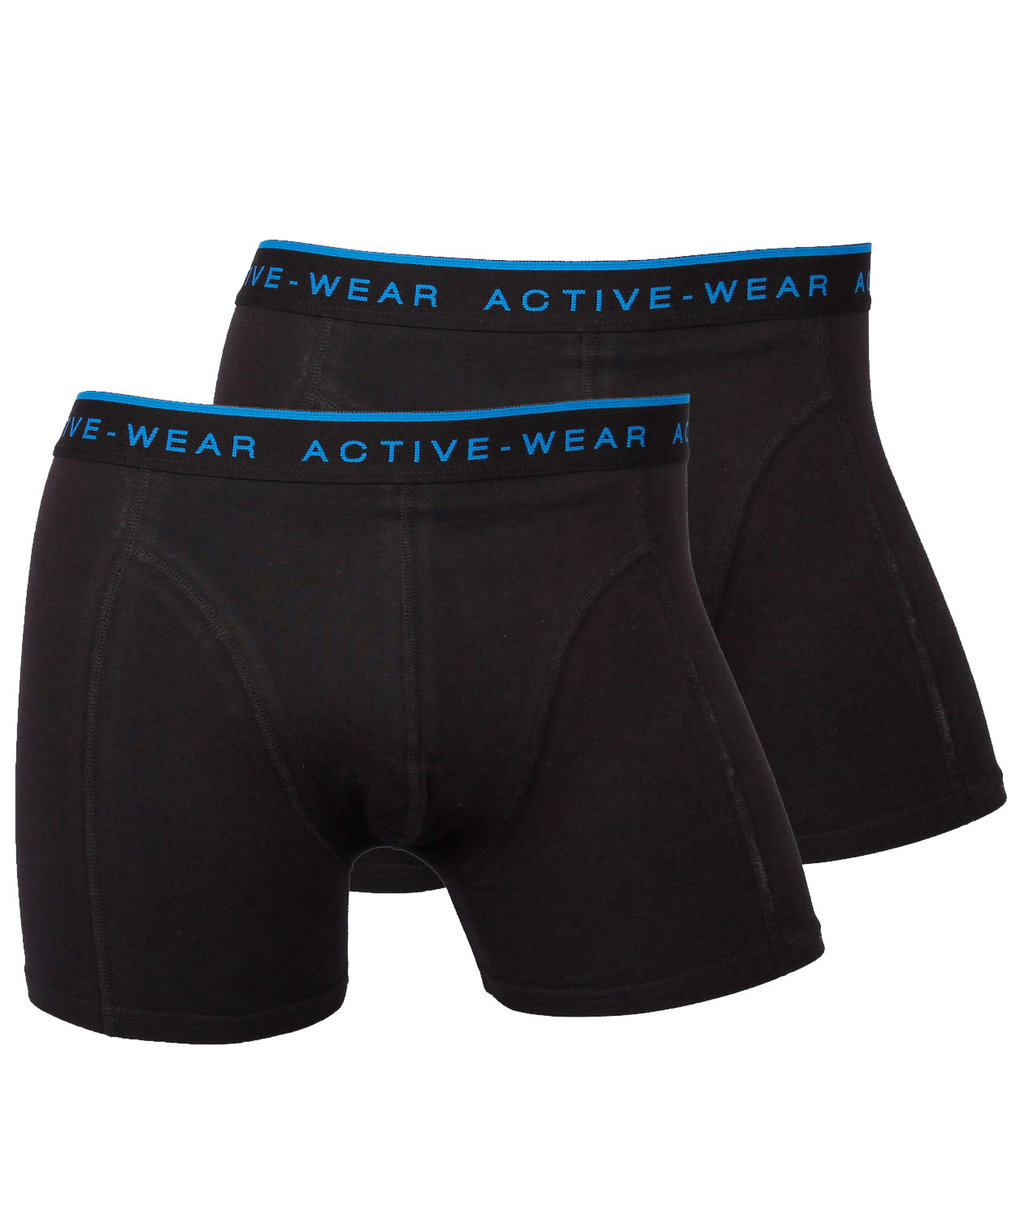 Active-wear 2-pack kalsong, Svart